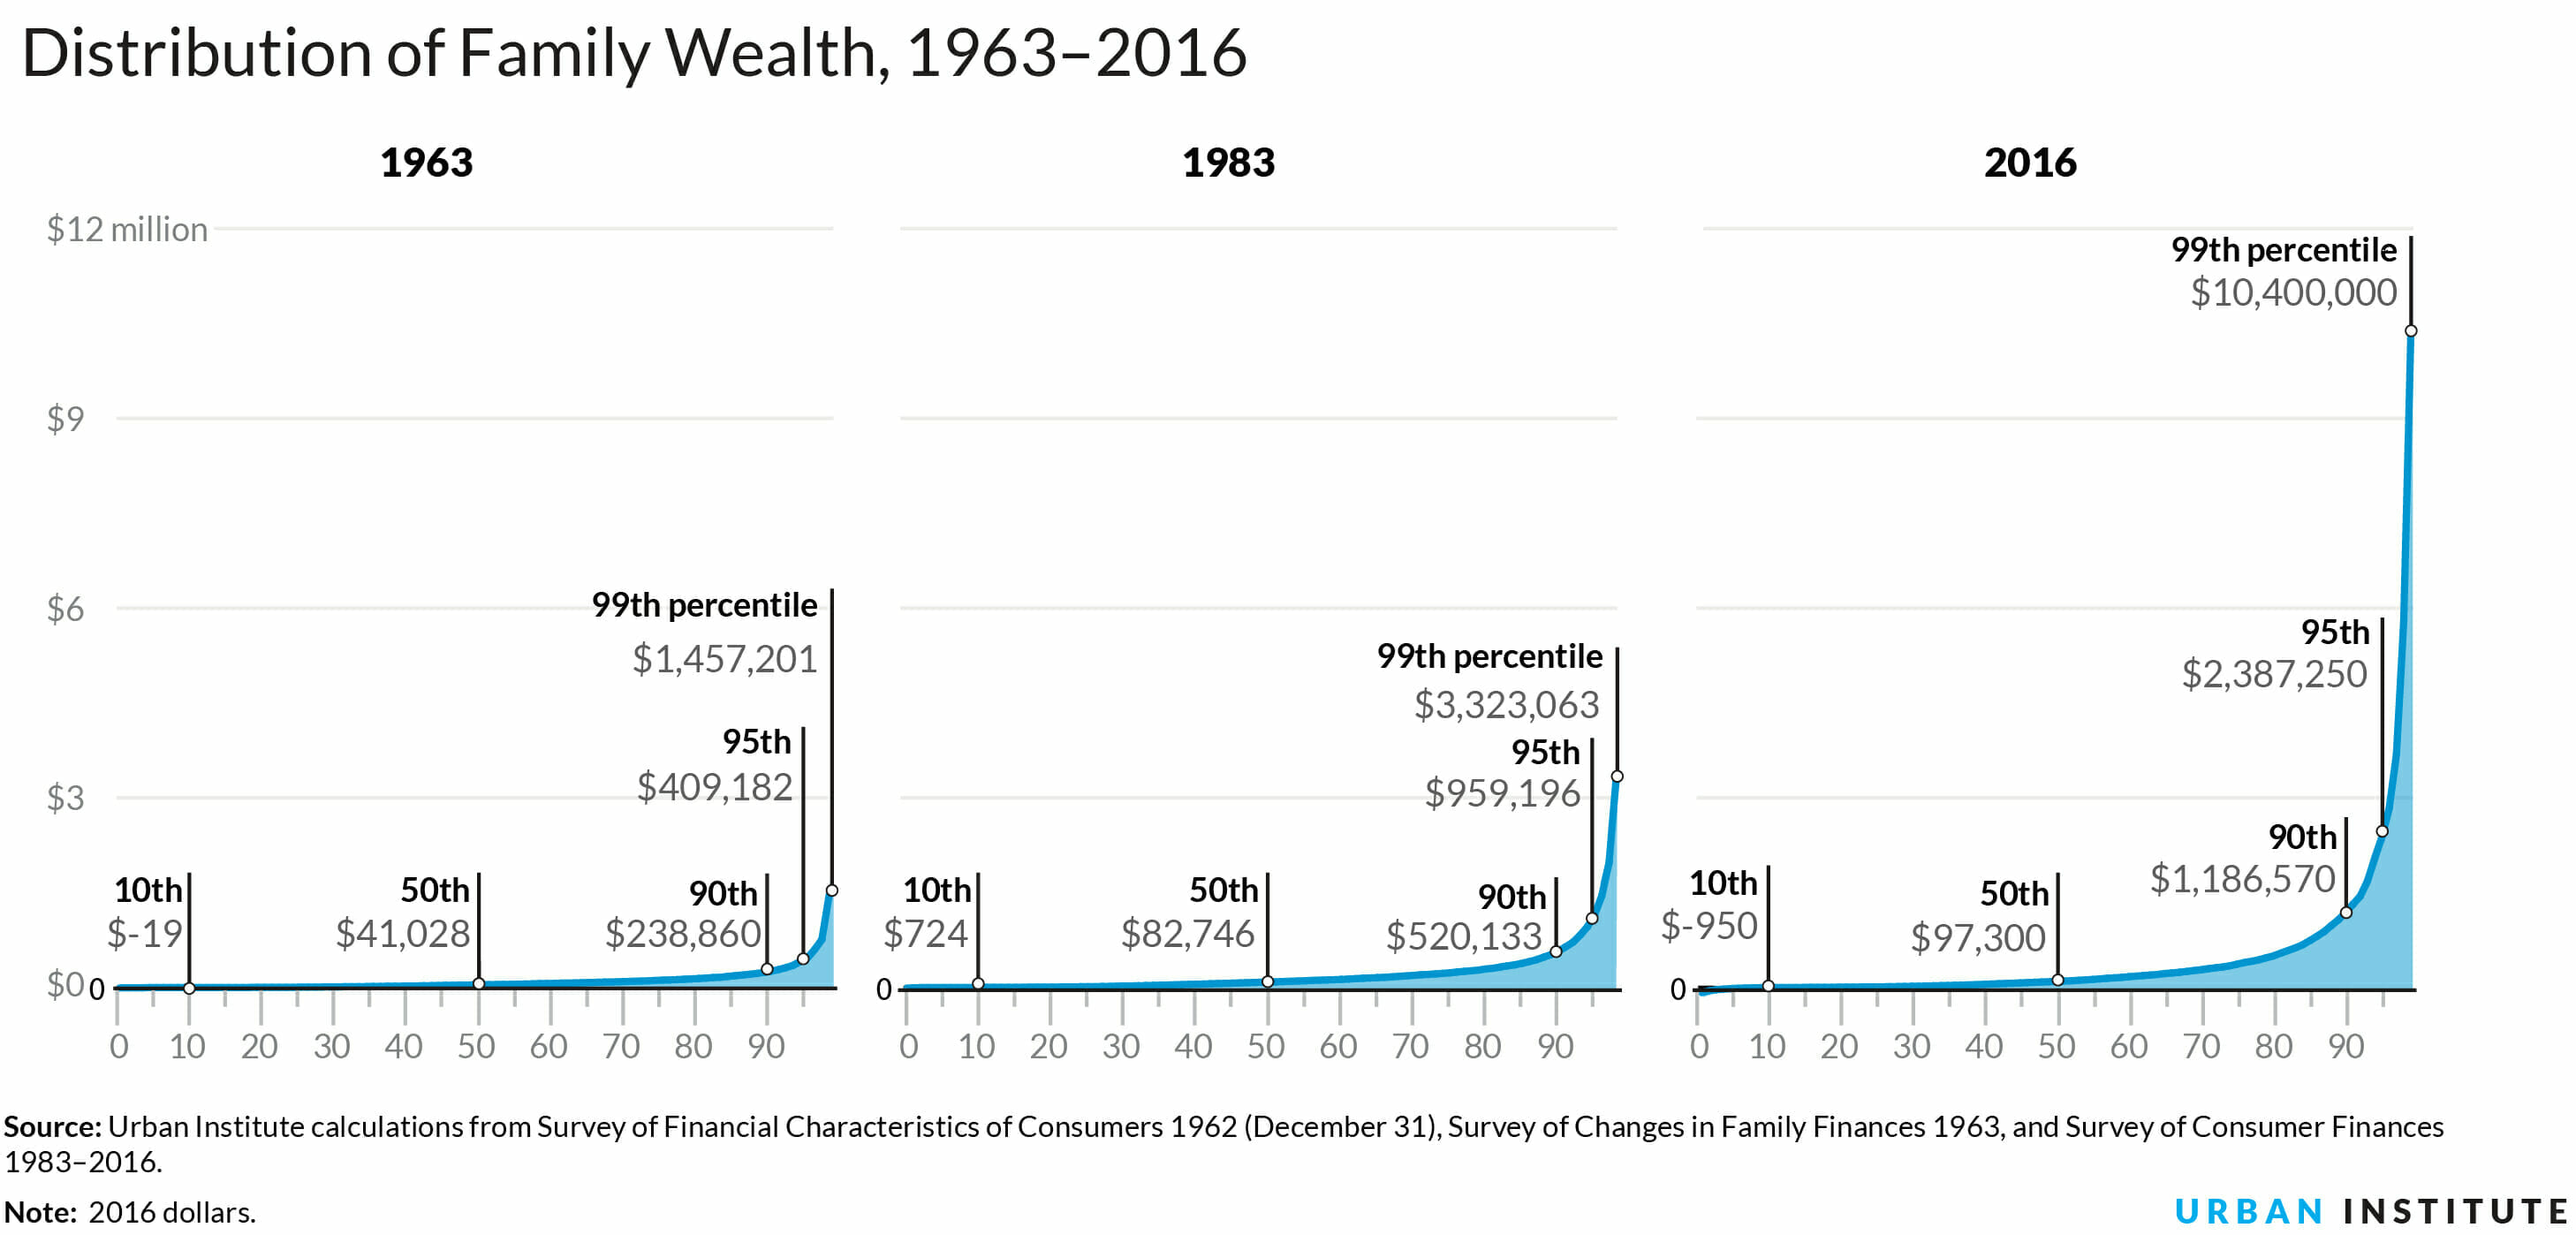 Graphs of the distribution of family wealth for the years 1963, 1983, and 1016.